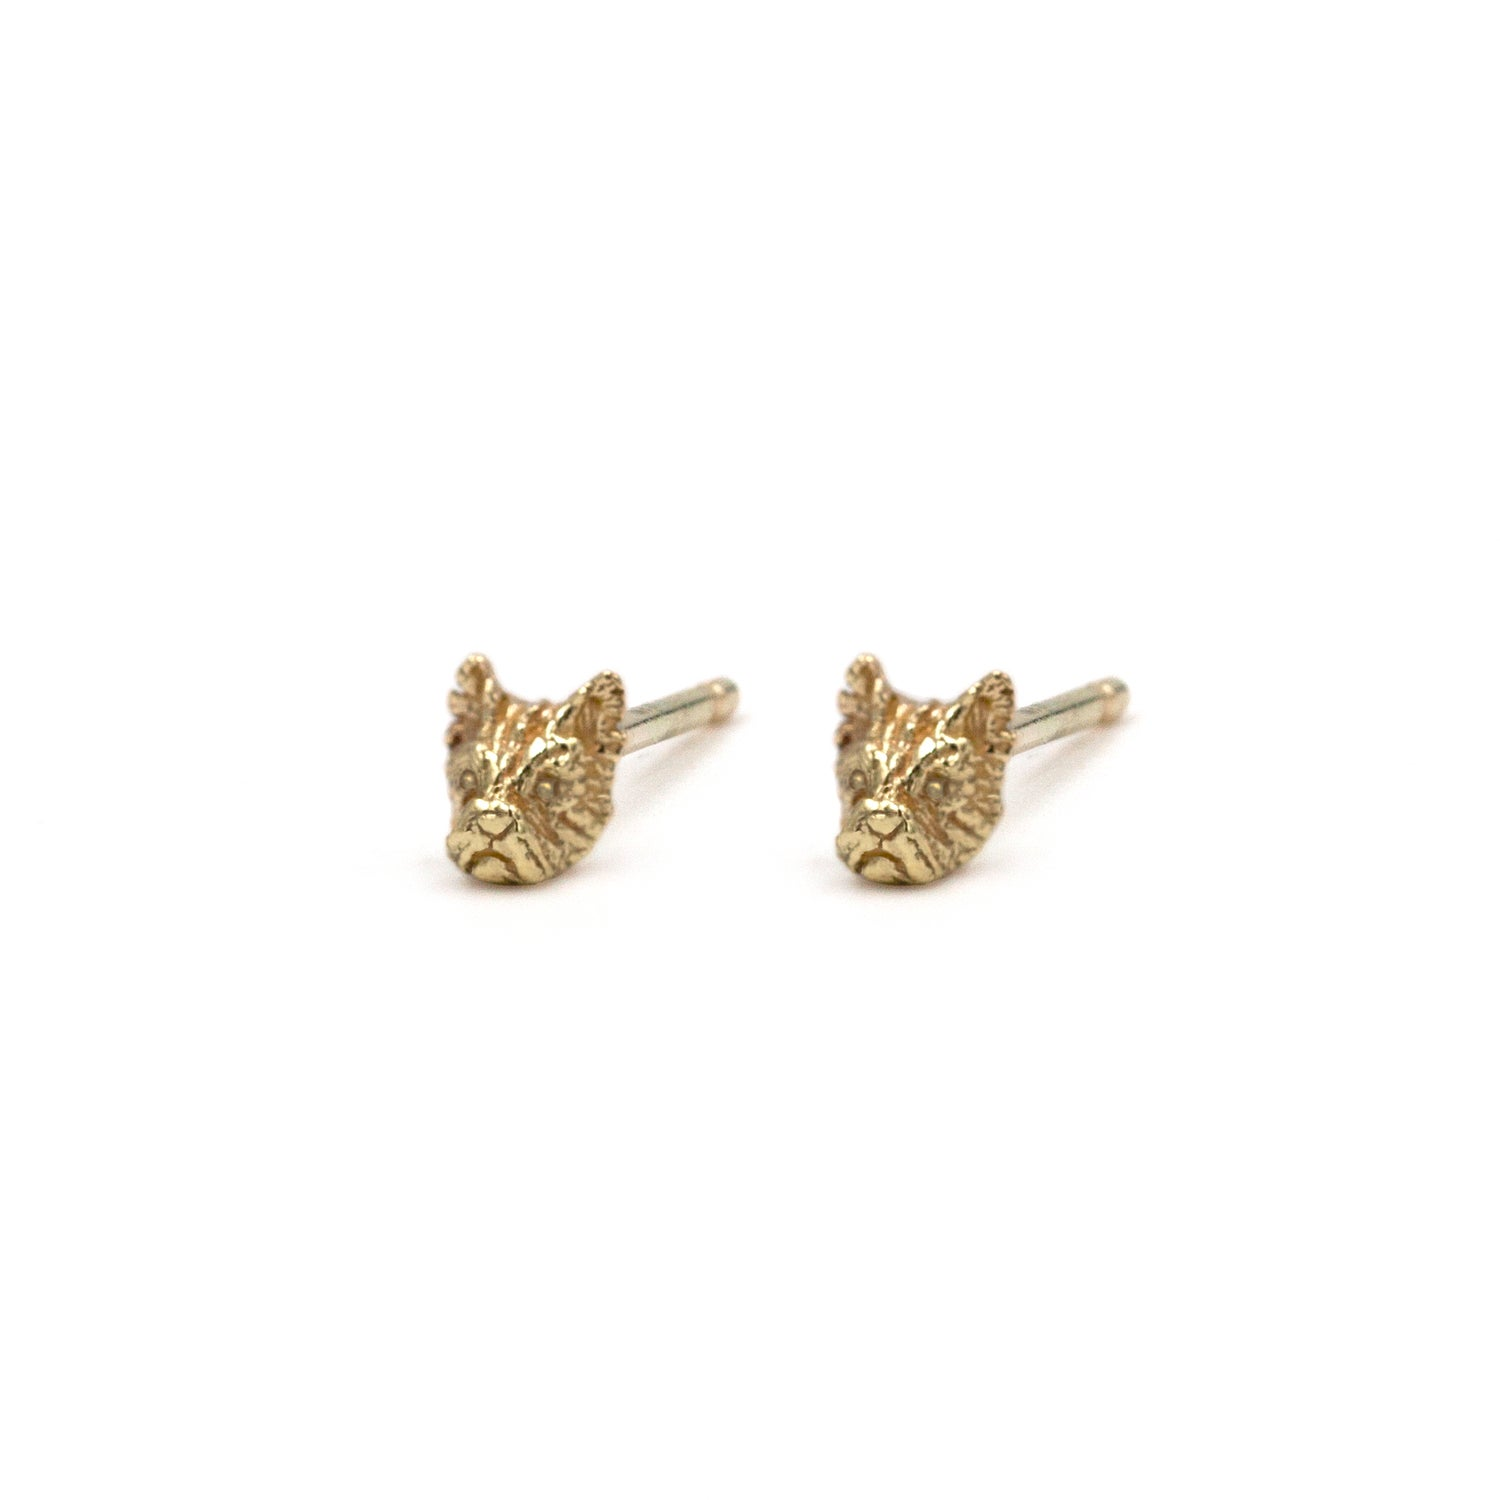 Image of Ralphy the Westie Studs- 14K Gold